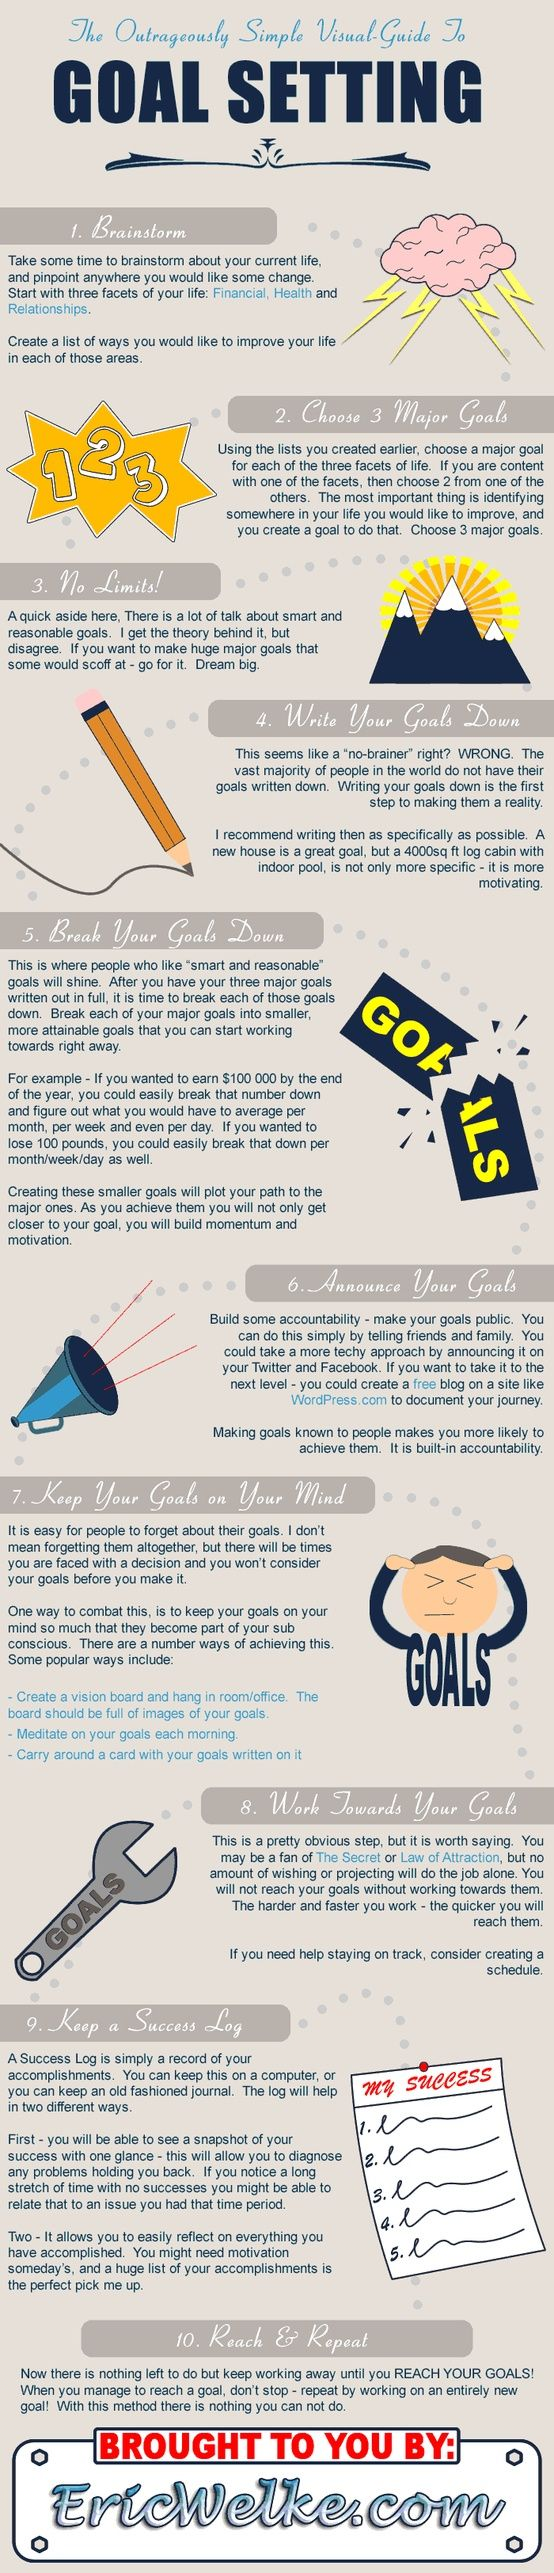 """""""Outrageously Simple Visual Guide to Goal Setting' infographic by Eric Welke (http://www.ericwelke.com/)"""